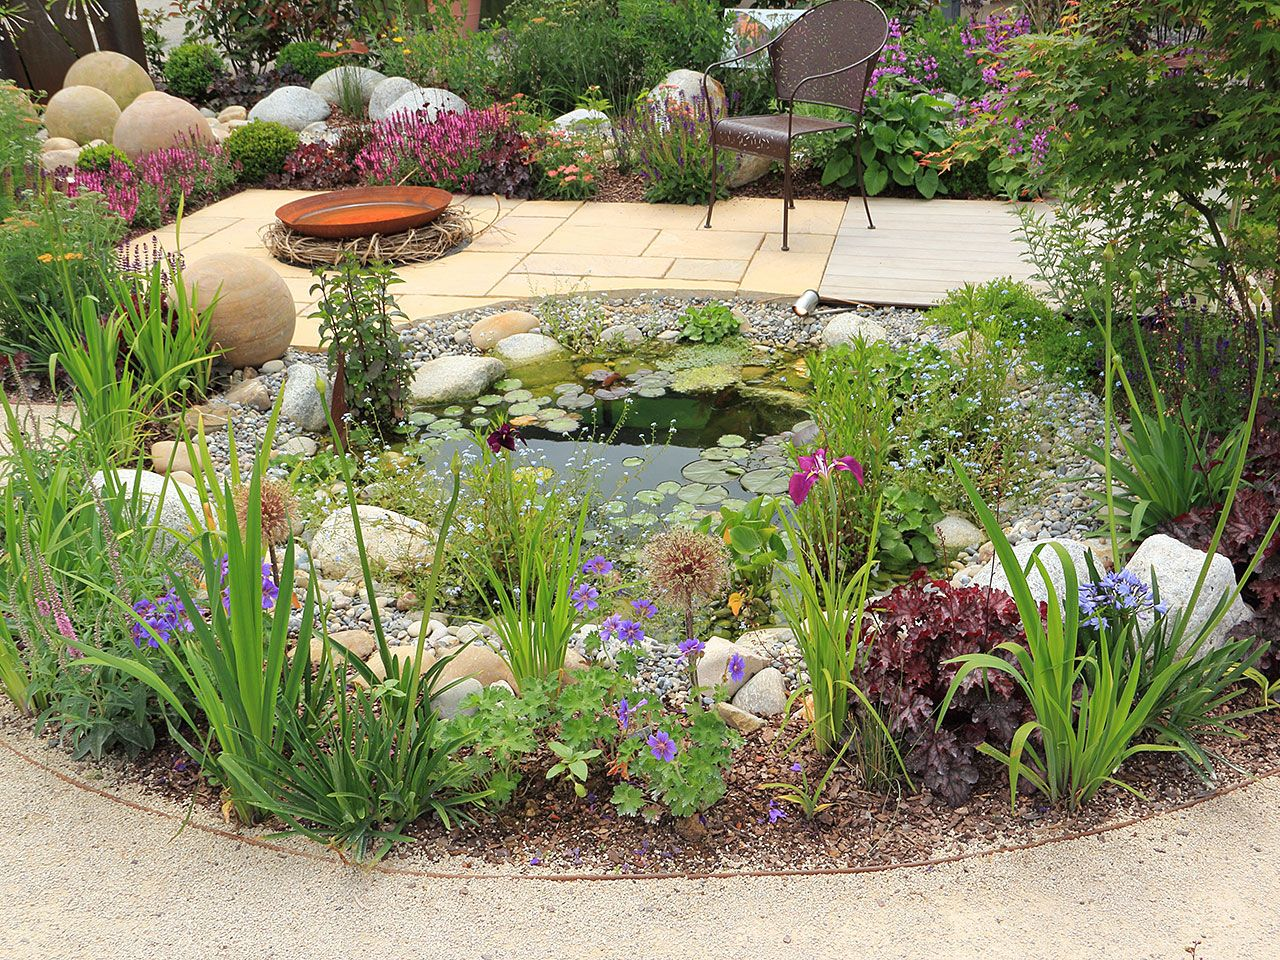 Garden pond with flowers and shrubs gardens pinterest for Landscaping around a small pond